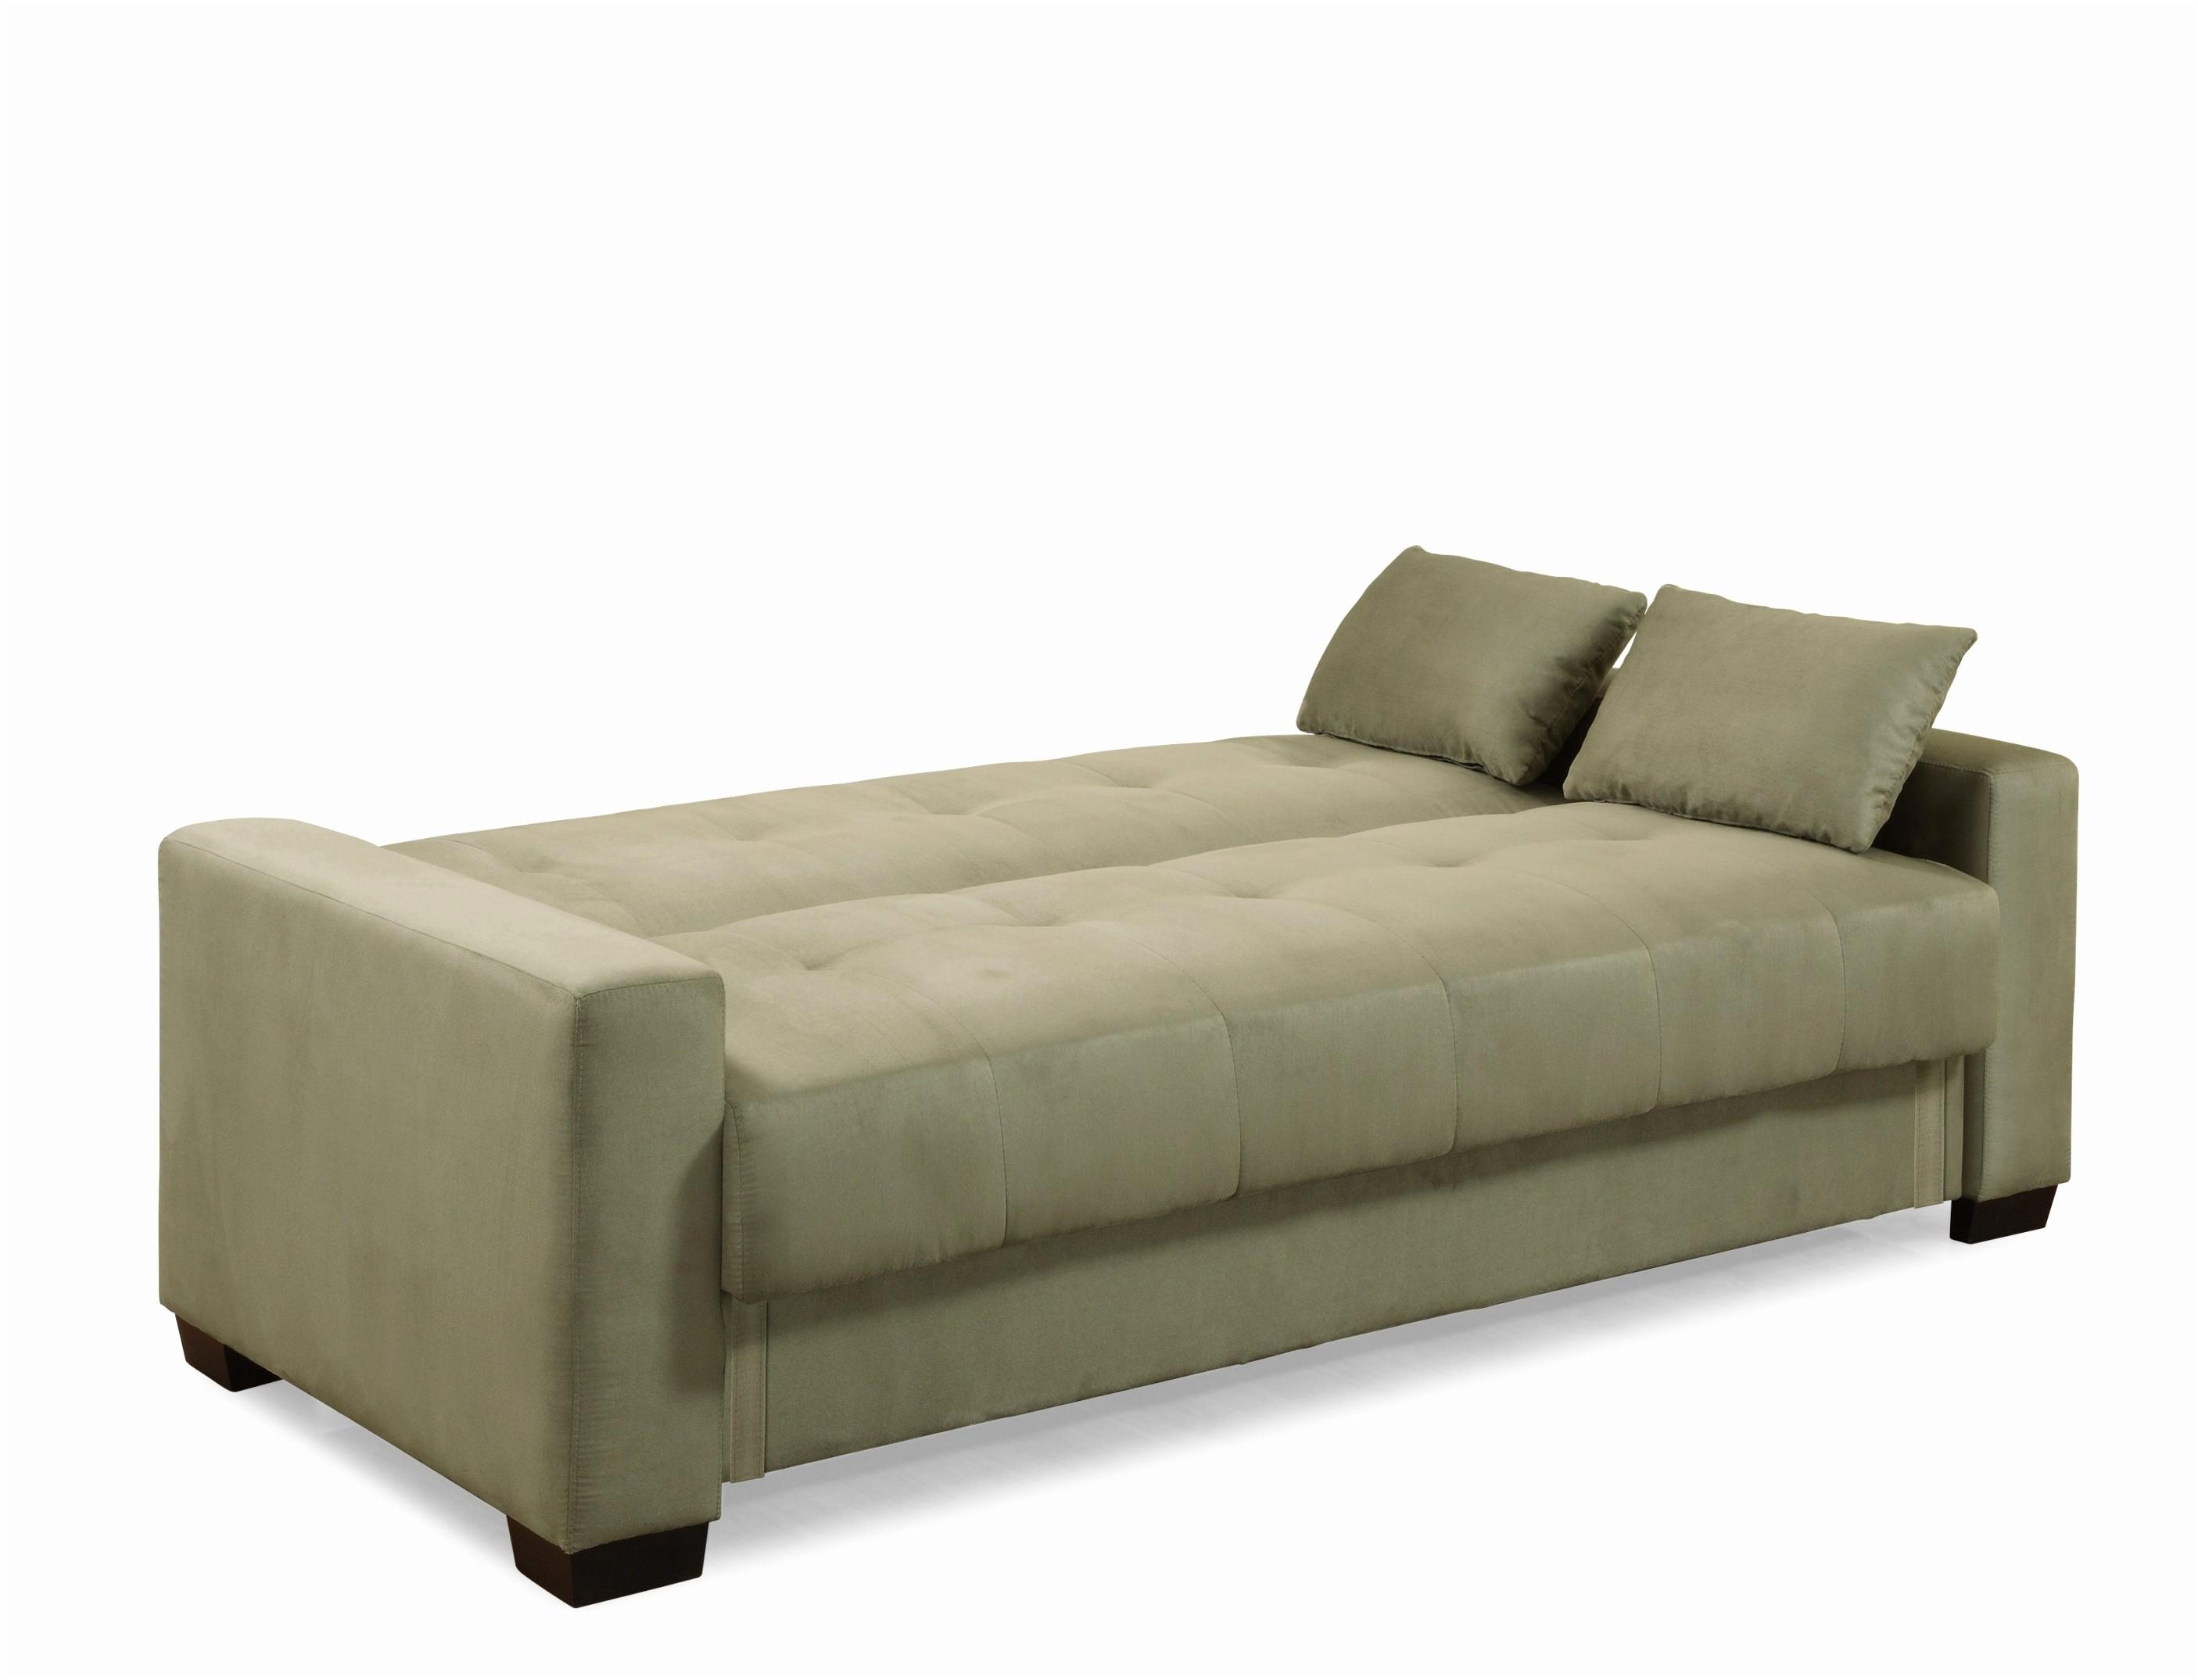 Lovely Convertible Sofa Bed Storage Best